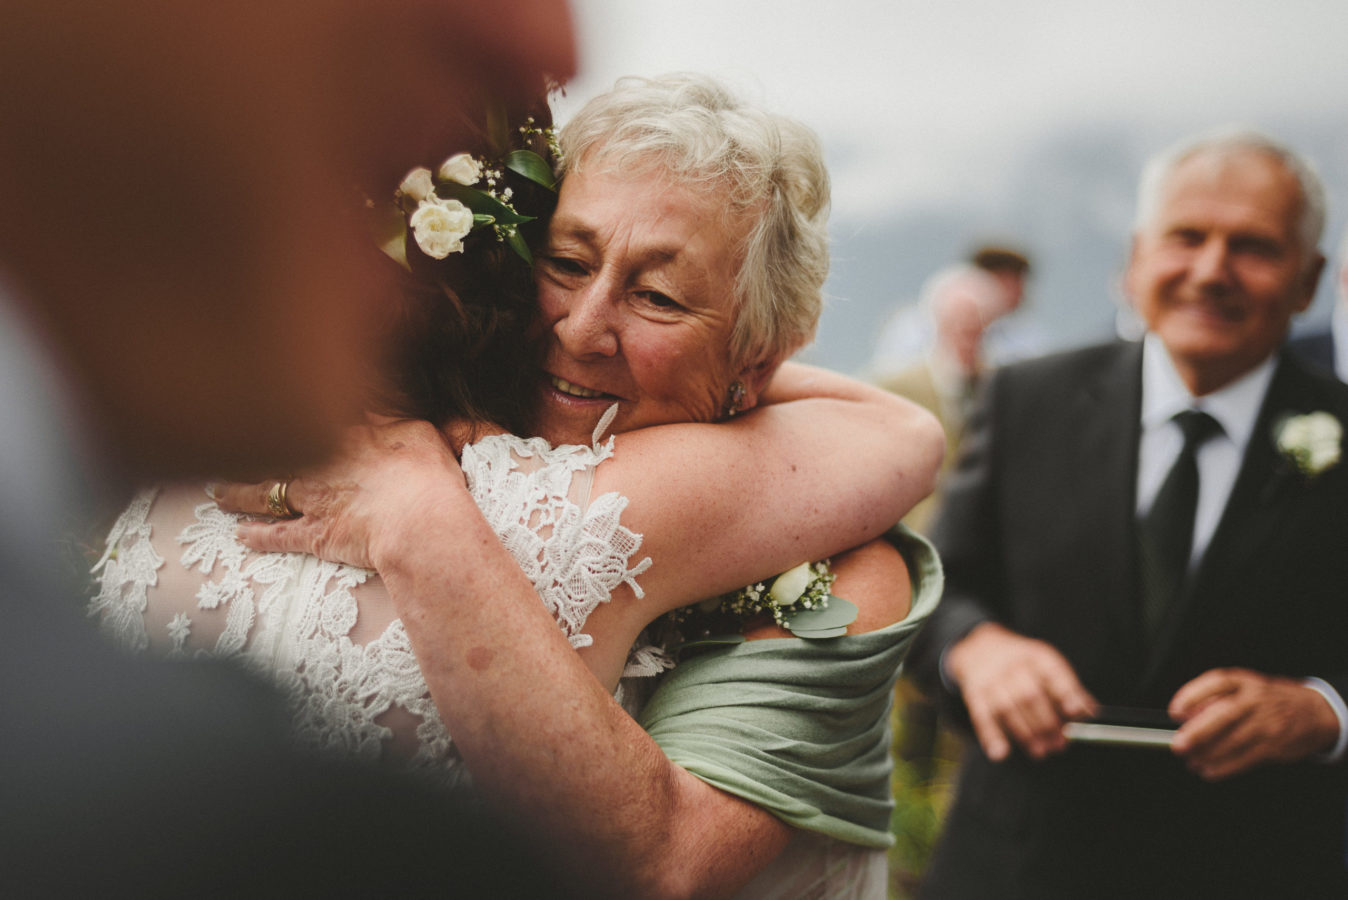 face of an older woman emotionally smiling as she hugs a bride on her wedding day